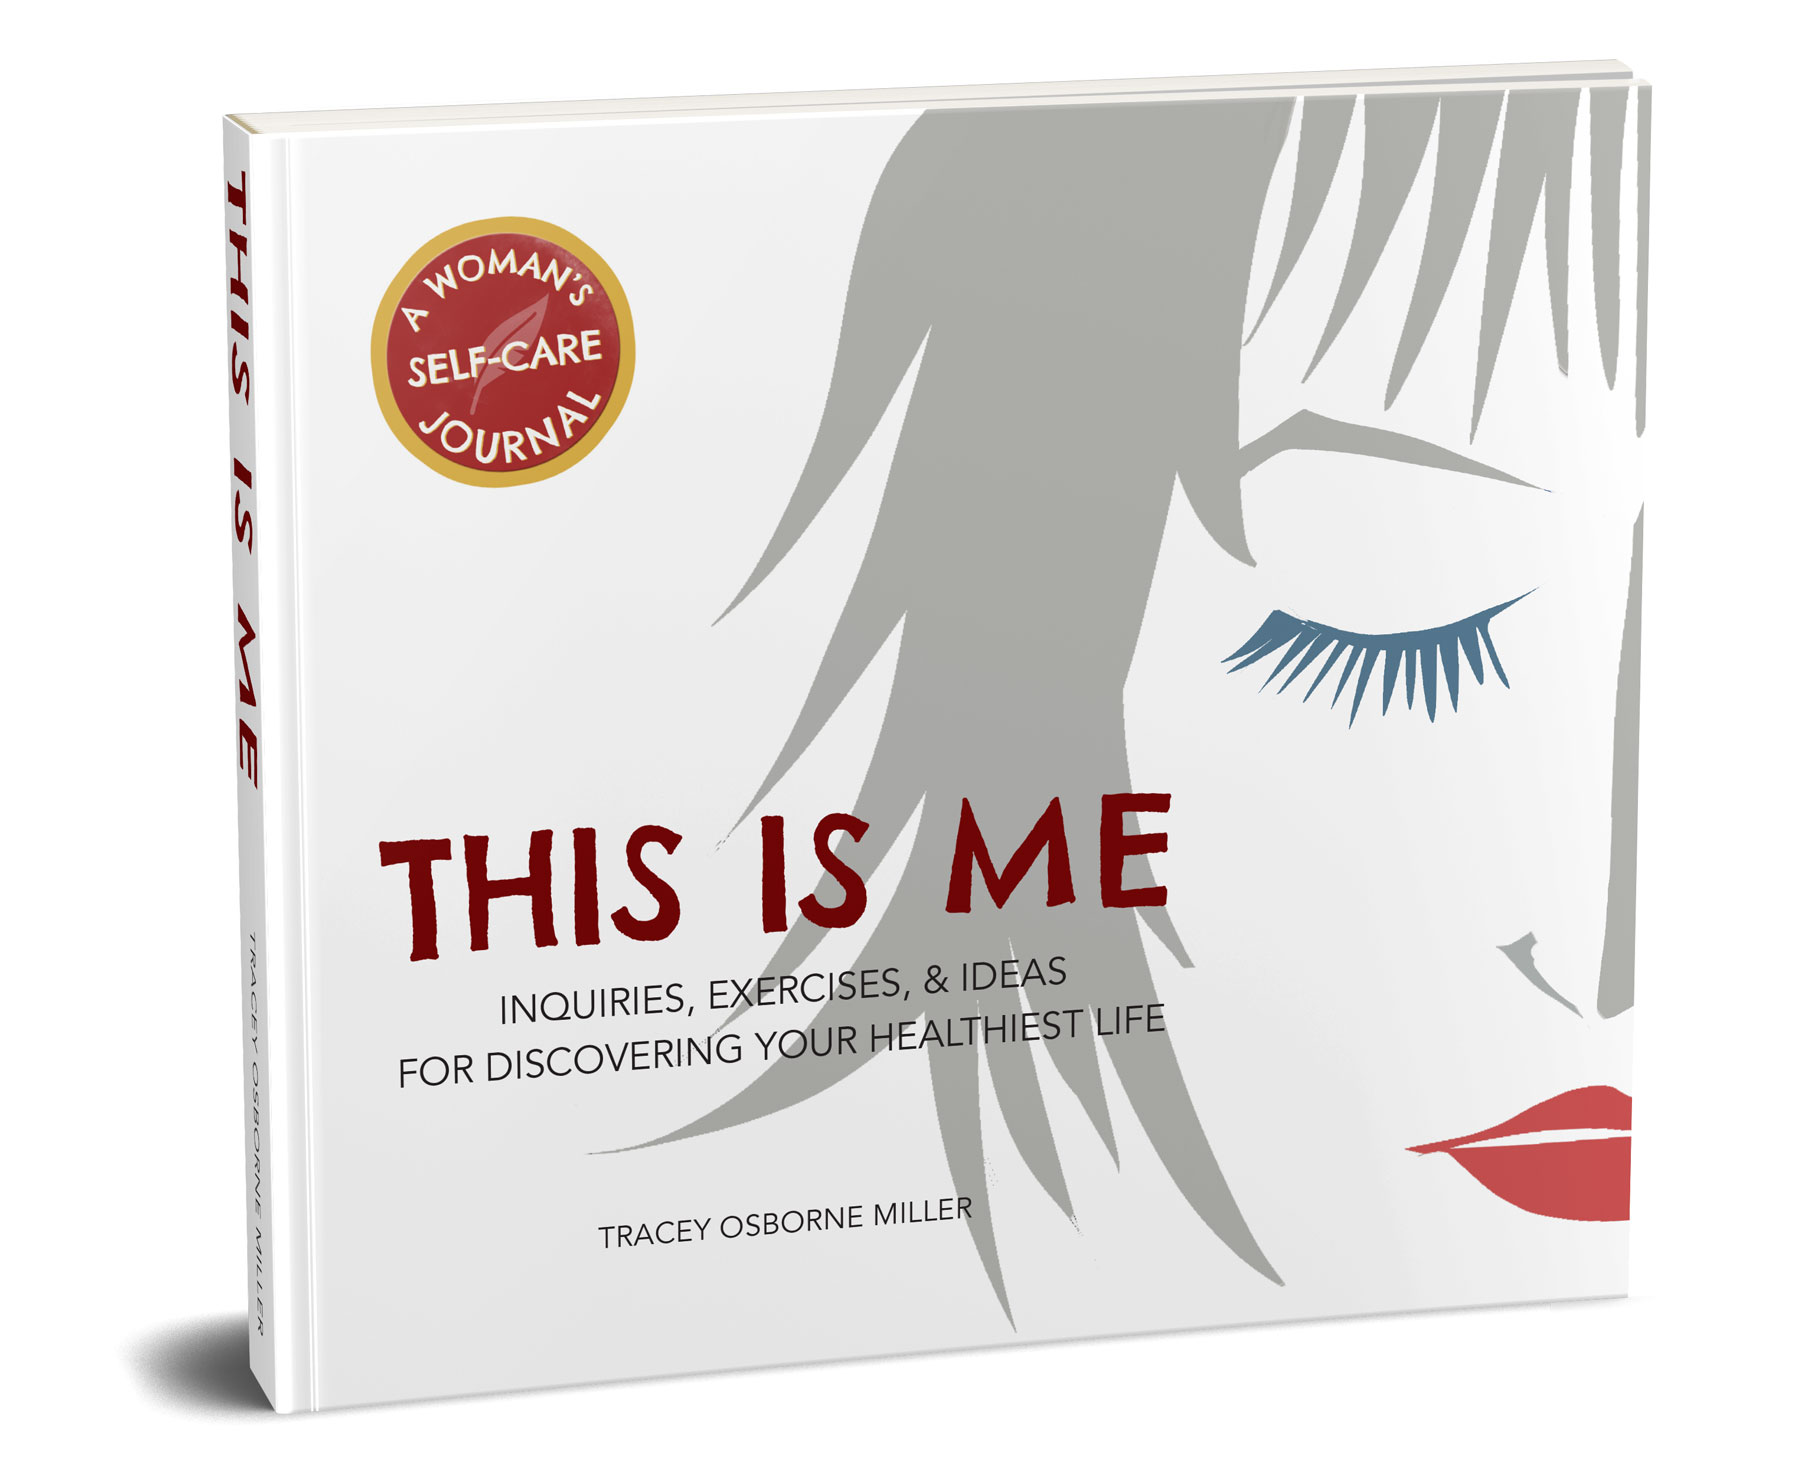 - Are you ready for more? Want to keep leveling up your health? I invite you to take a peak at A Woman's Self-Care Journal, THIS IS ME: Inquiries, exercises and ideas for living your healthiest life to help you find out how great you can feel! Click here to find out how THIS IS ME can be more of YOU!